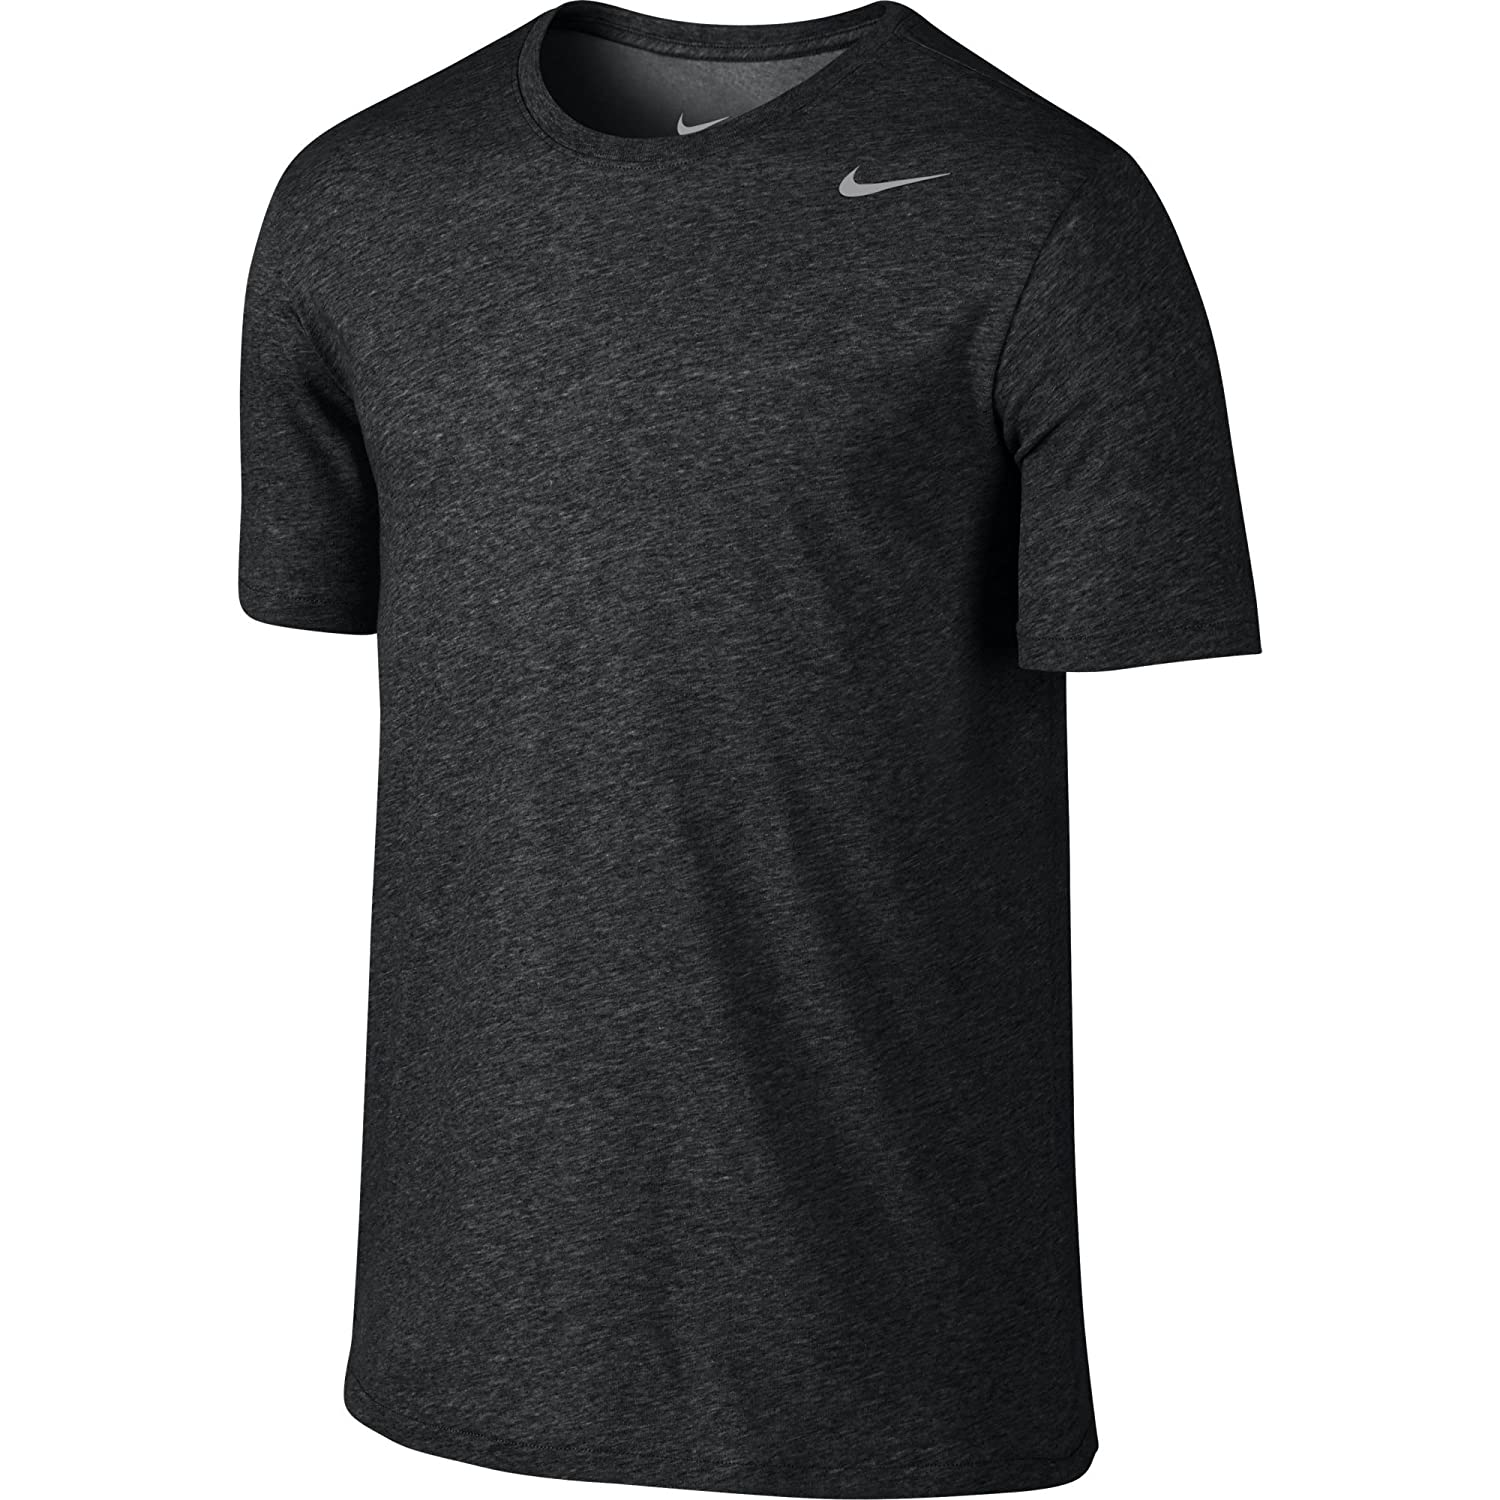 28757911bd Amazon.com  NIKE Men s Dri-FIT Cotton 2.0 Tee  Sports   Outdoors